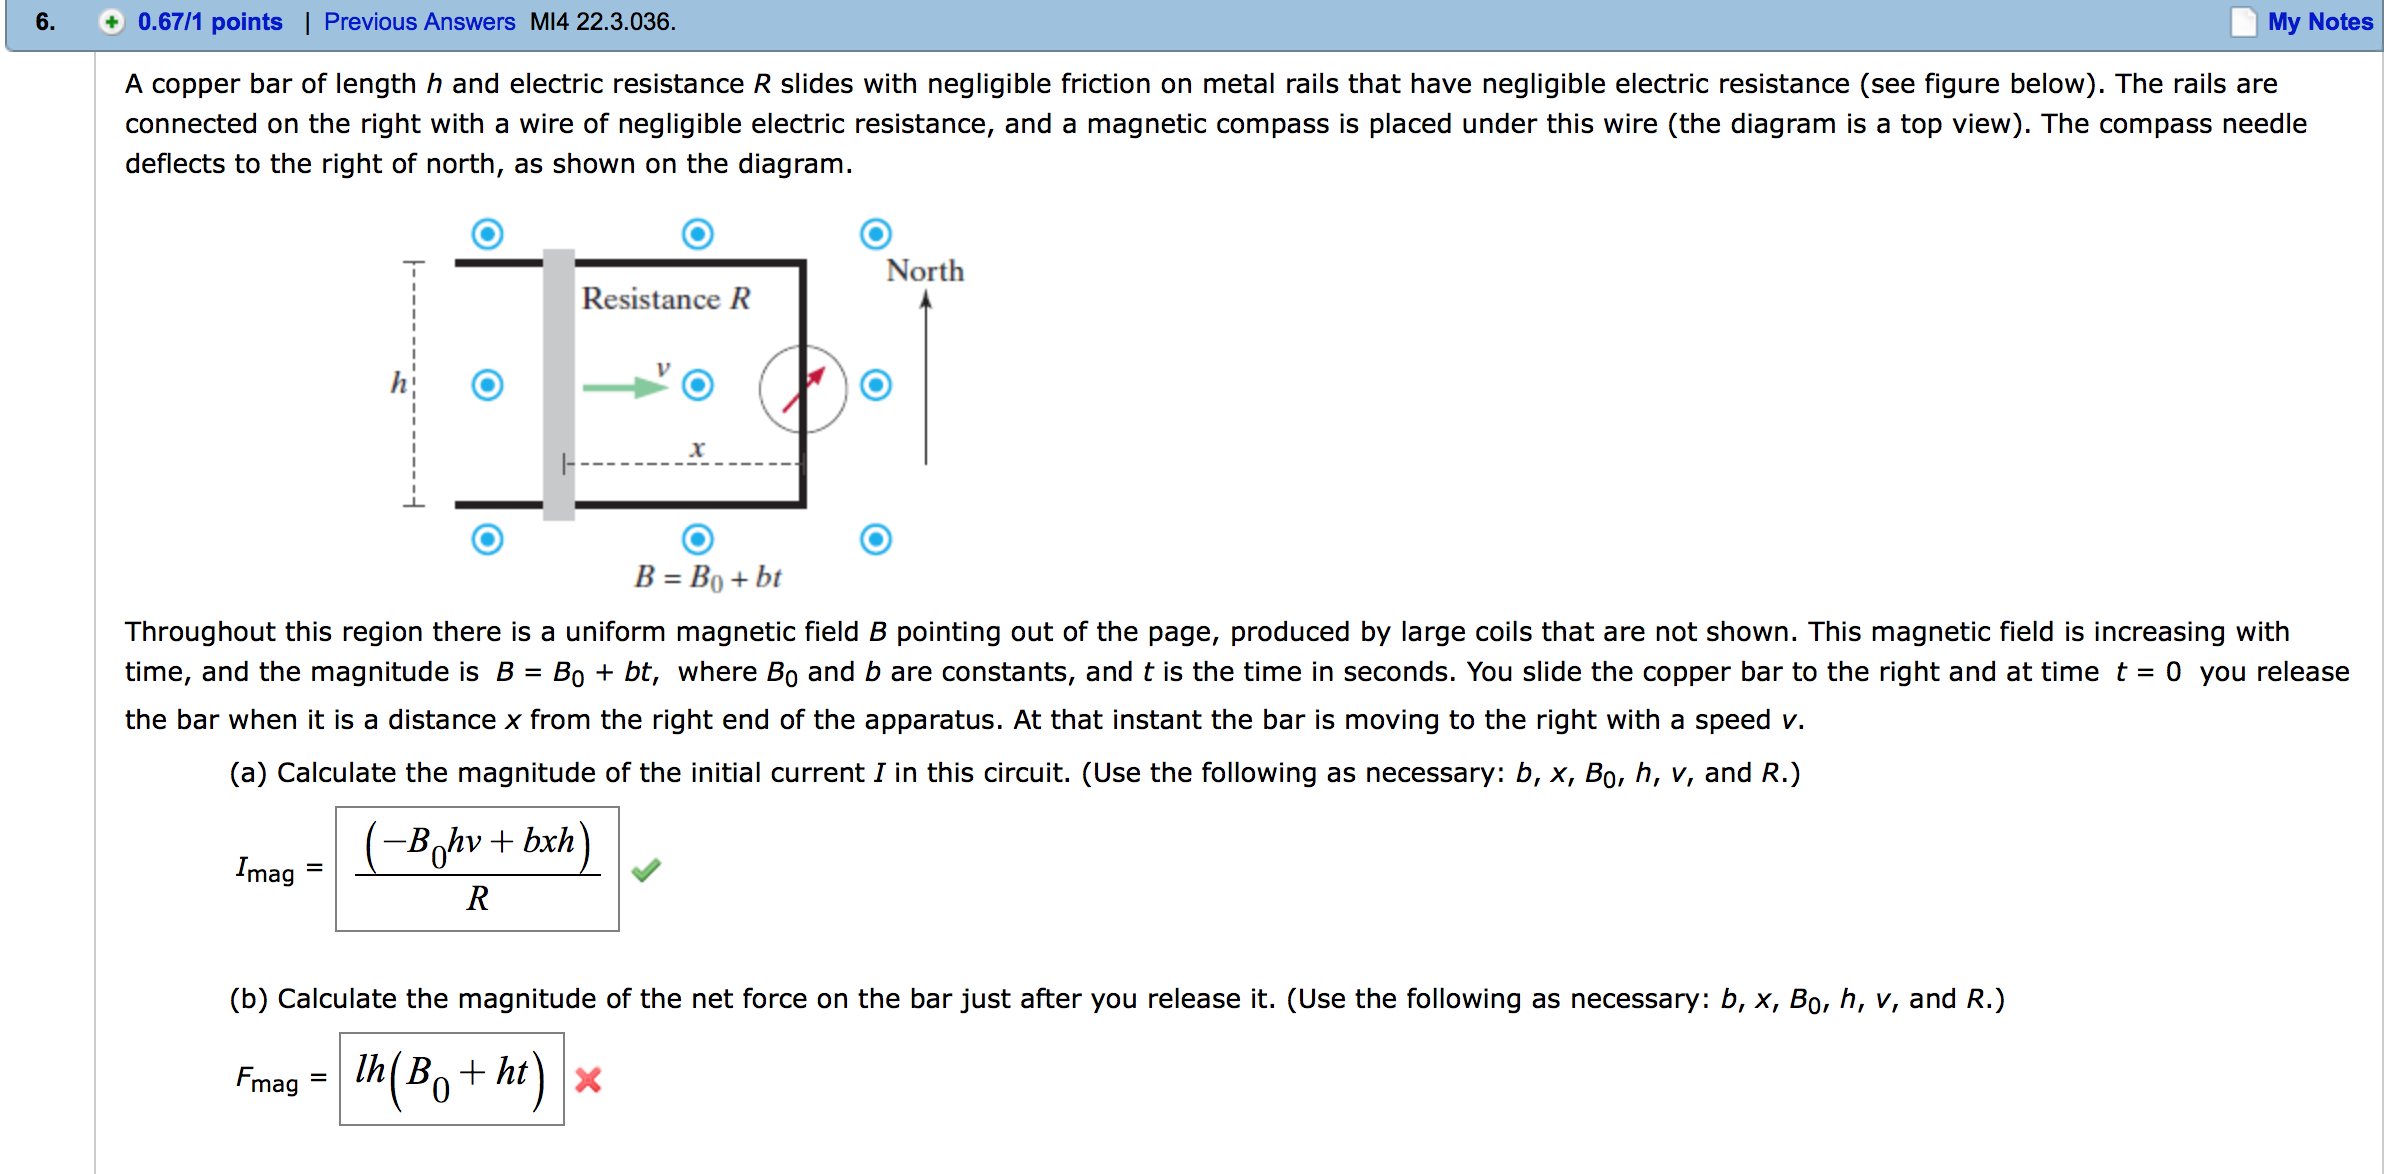 Calculate The Magnitude Of The Net Force On The Ba...   Chegg.com